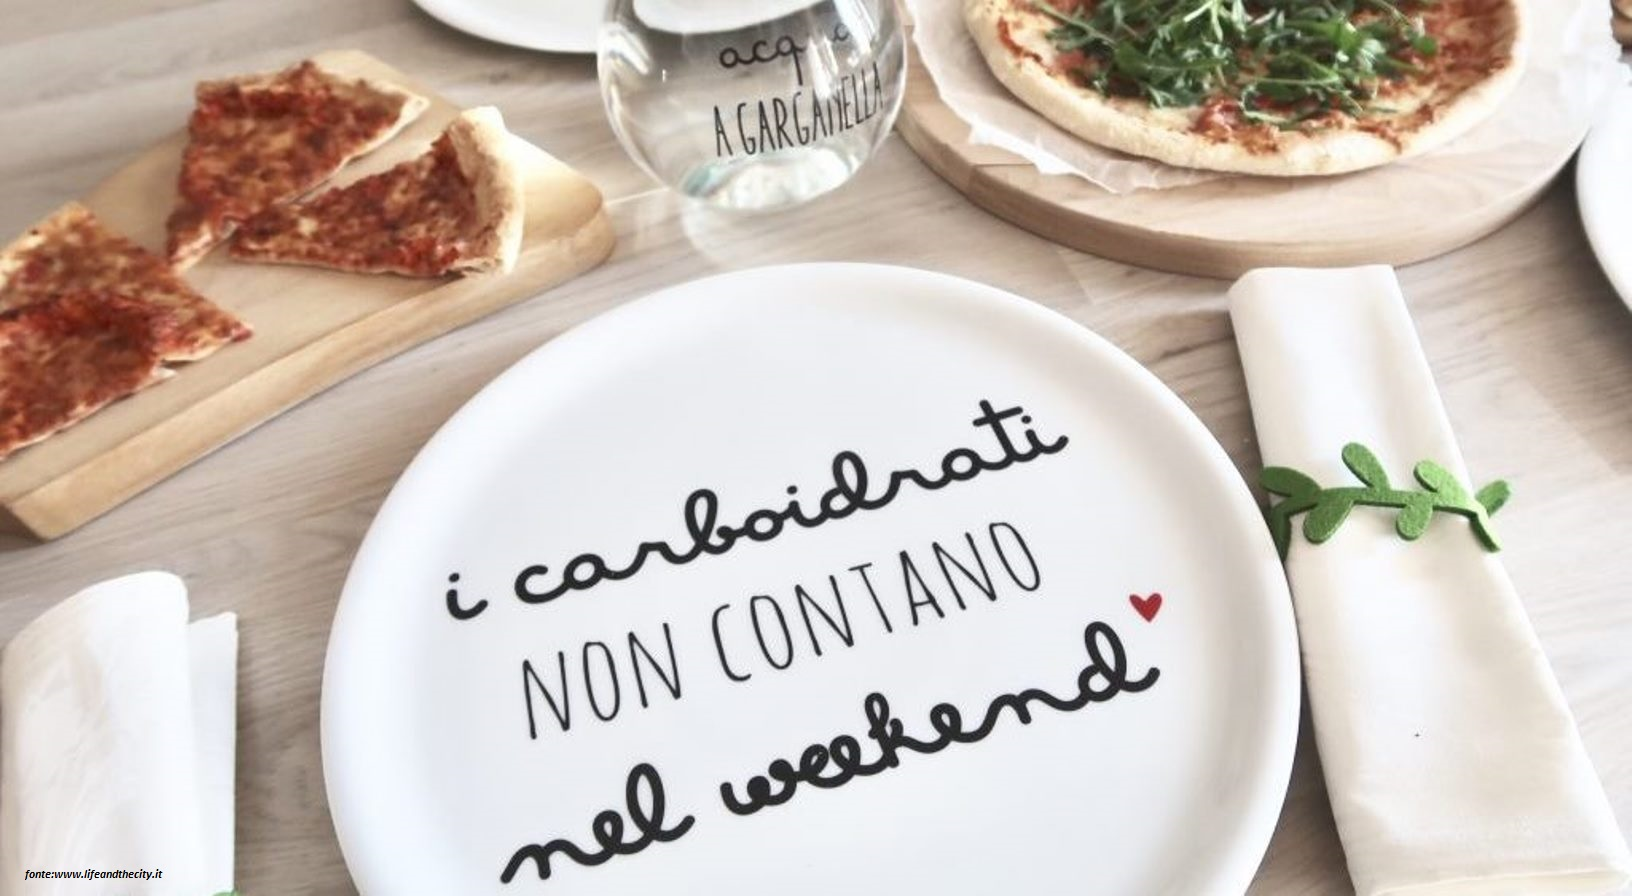 i carboidrati nel weekend